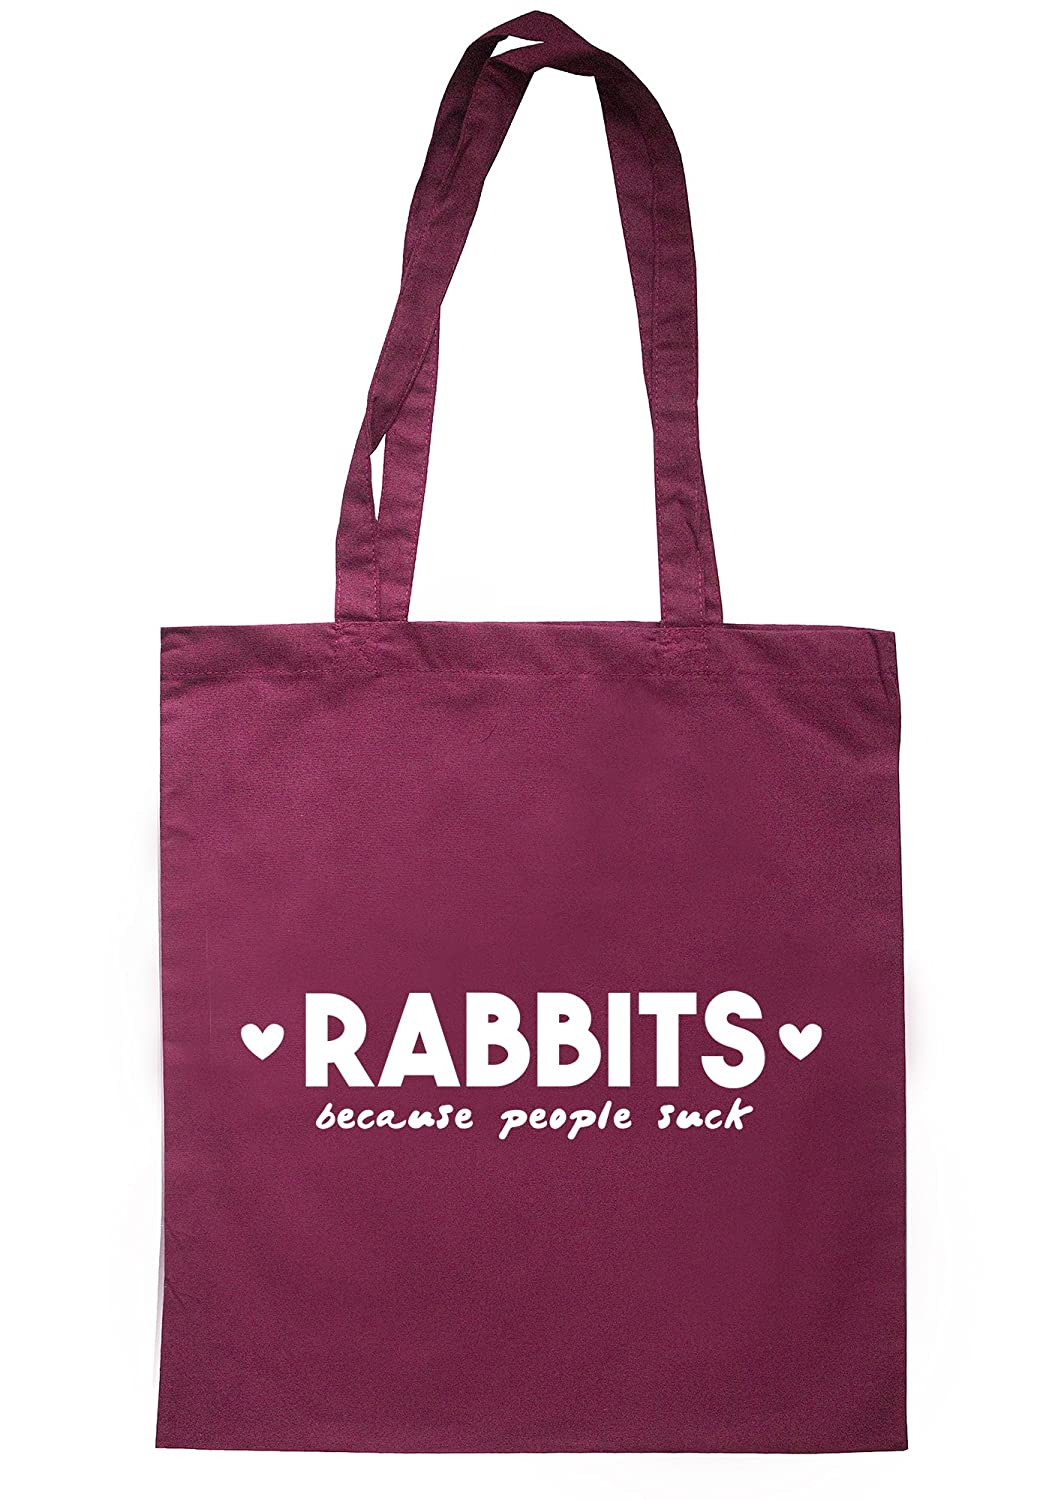 illustratedidentity Rabbits Because People Suck Tote Bag 37.5cm x 42cm with long handles TB1858-TB-NV